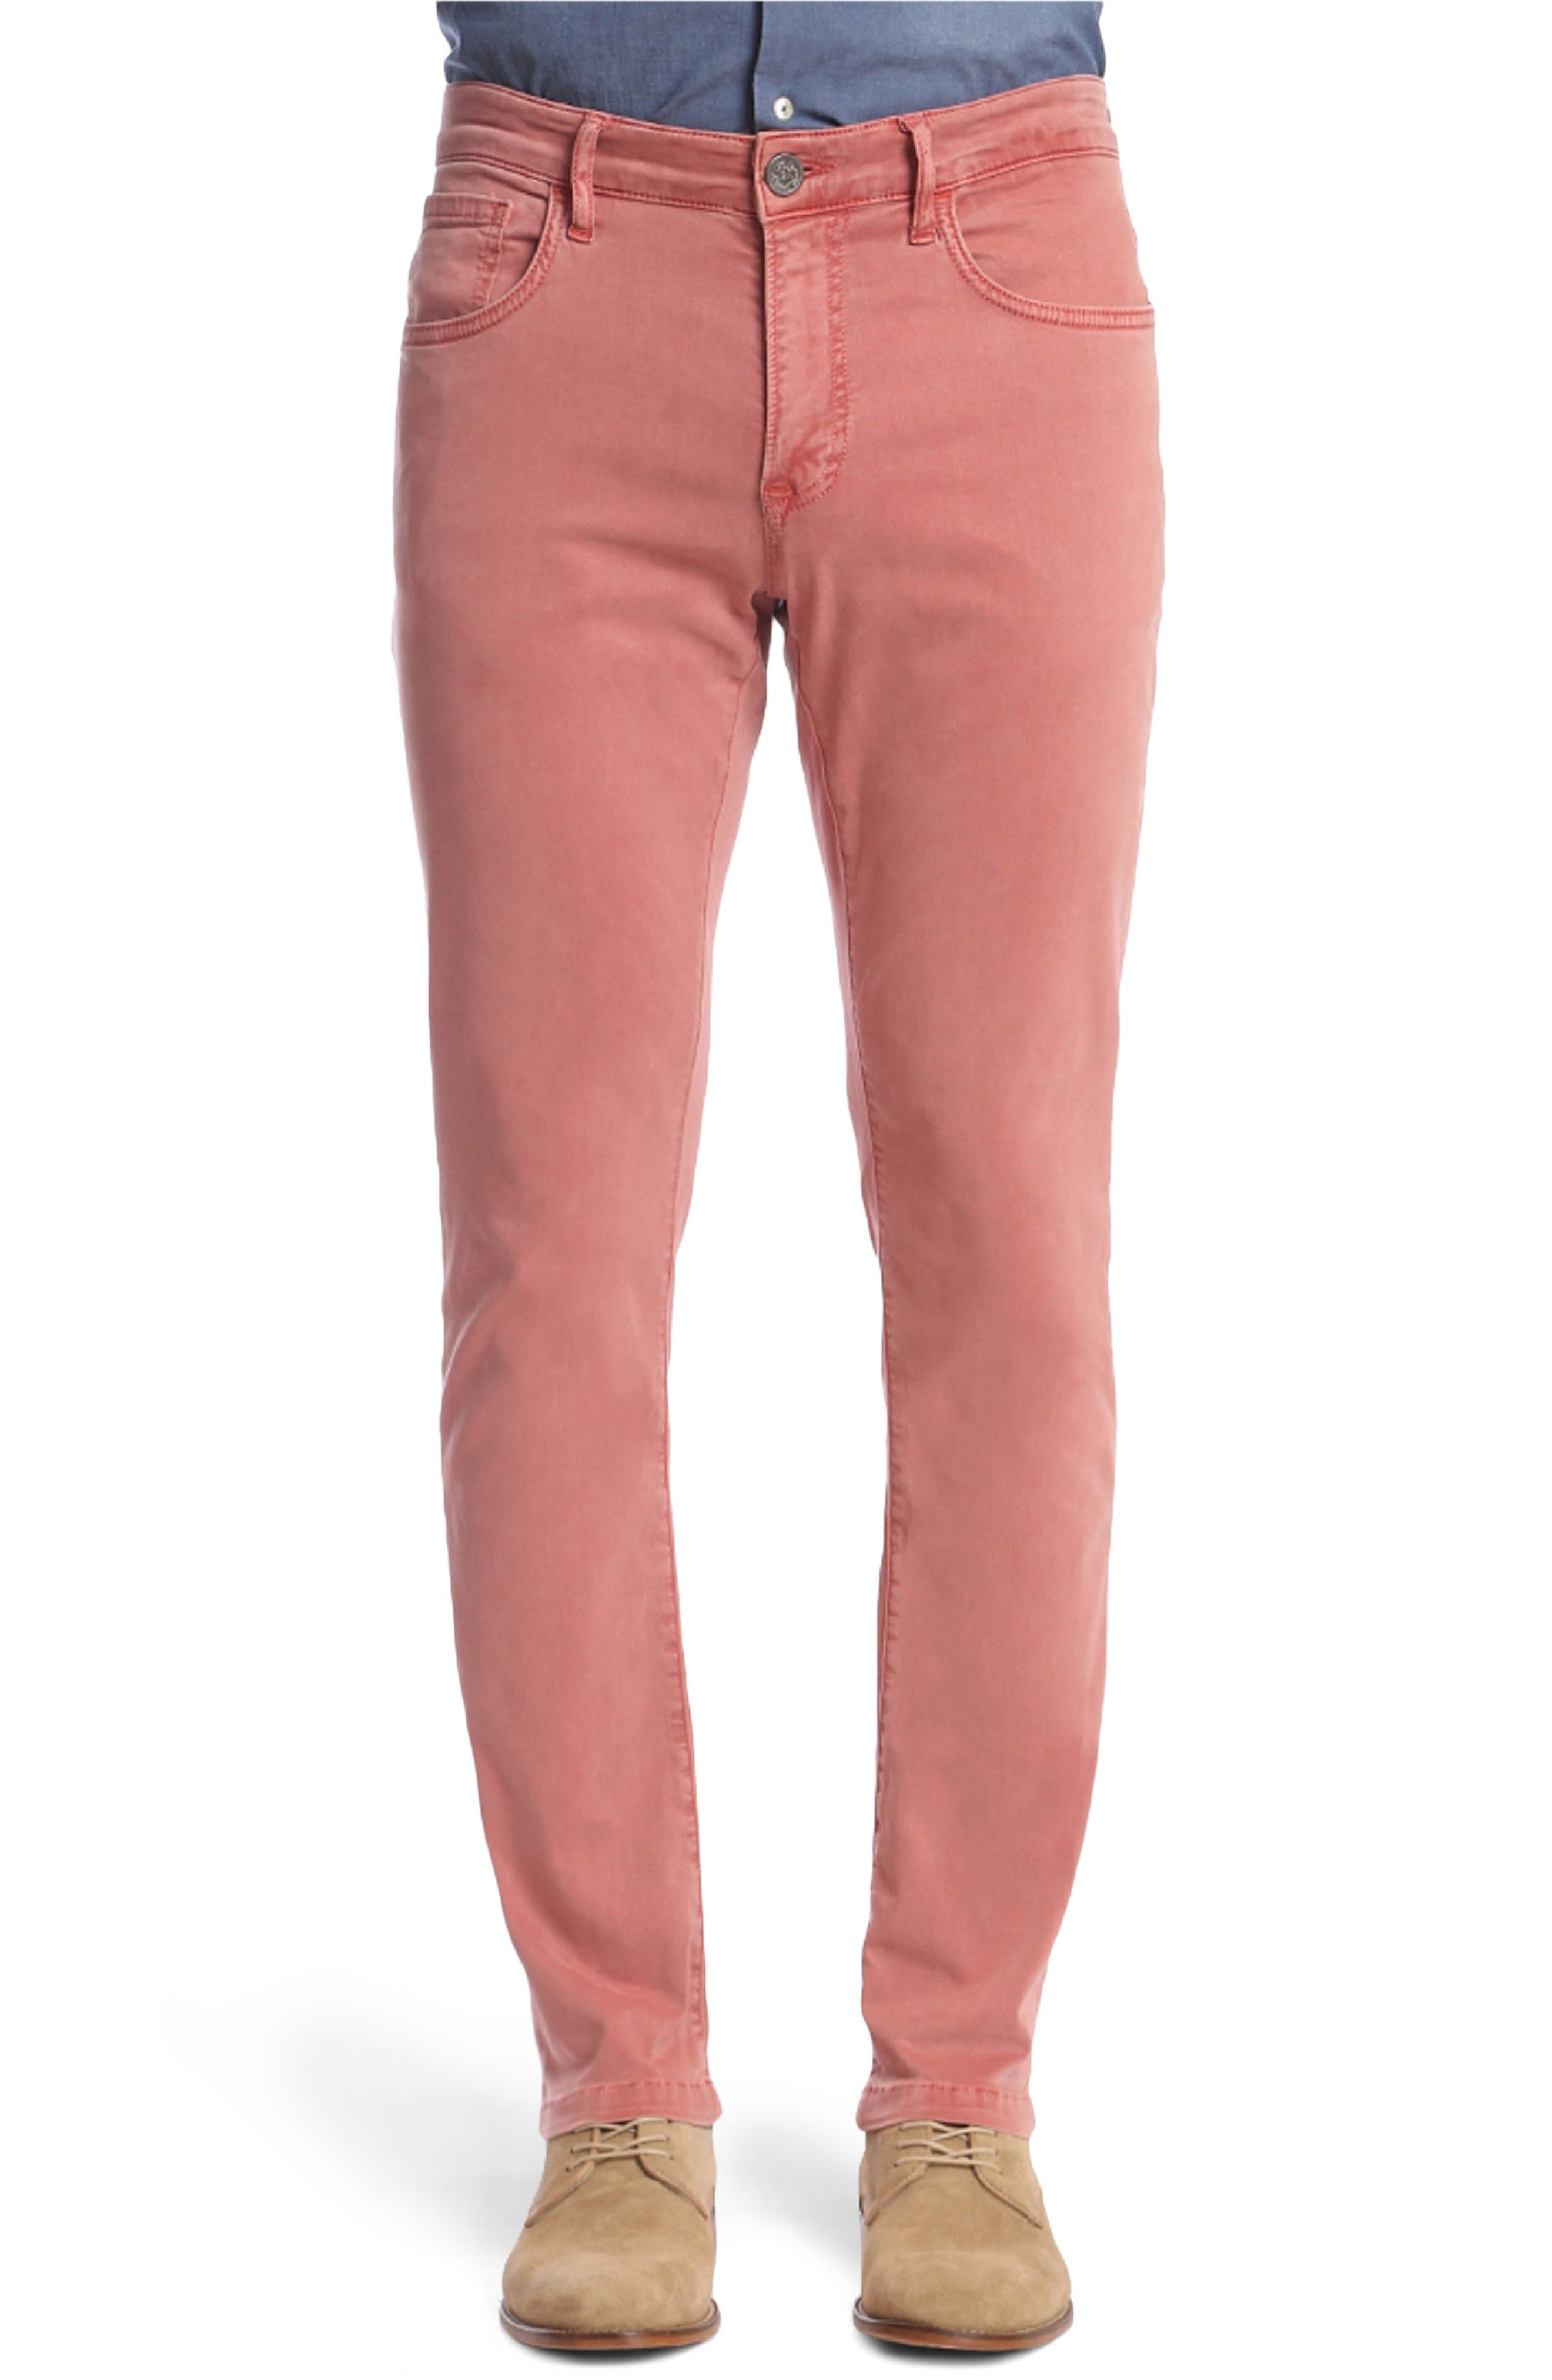 Charisma Relaxed Fit Twill Pants,                             Main thumbnail 1, color,                             BRICK TWILL